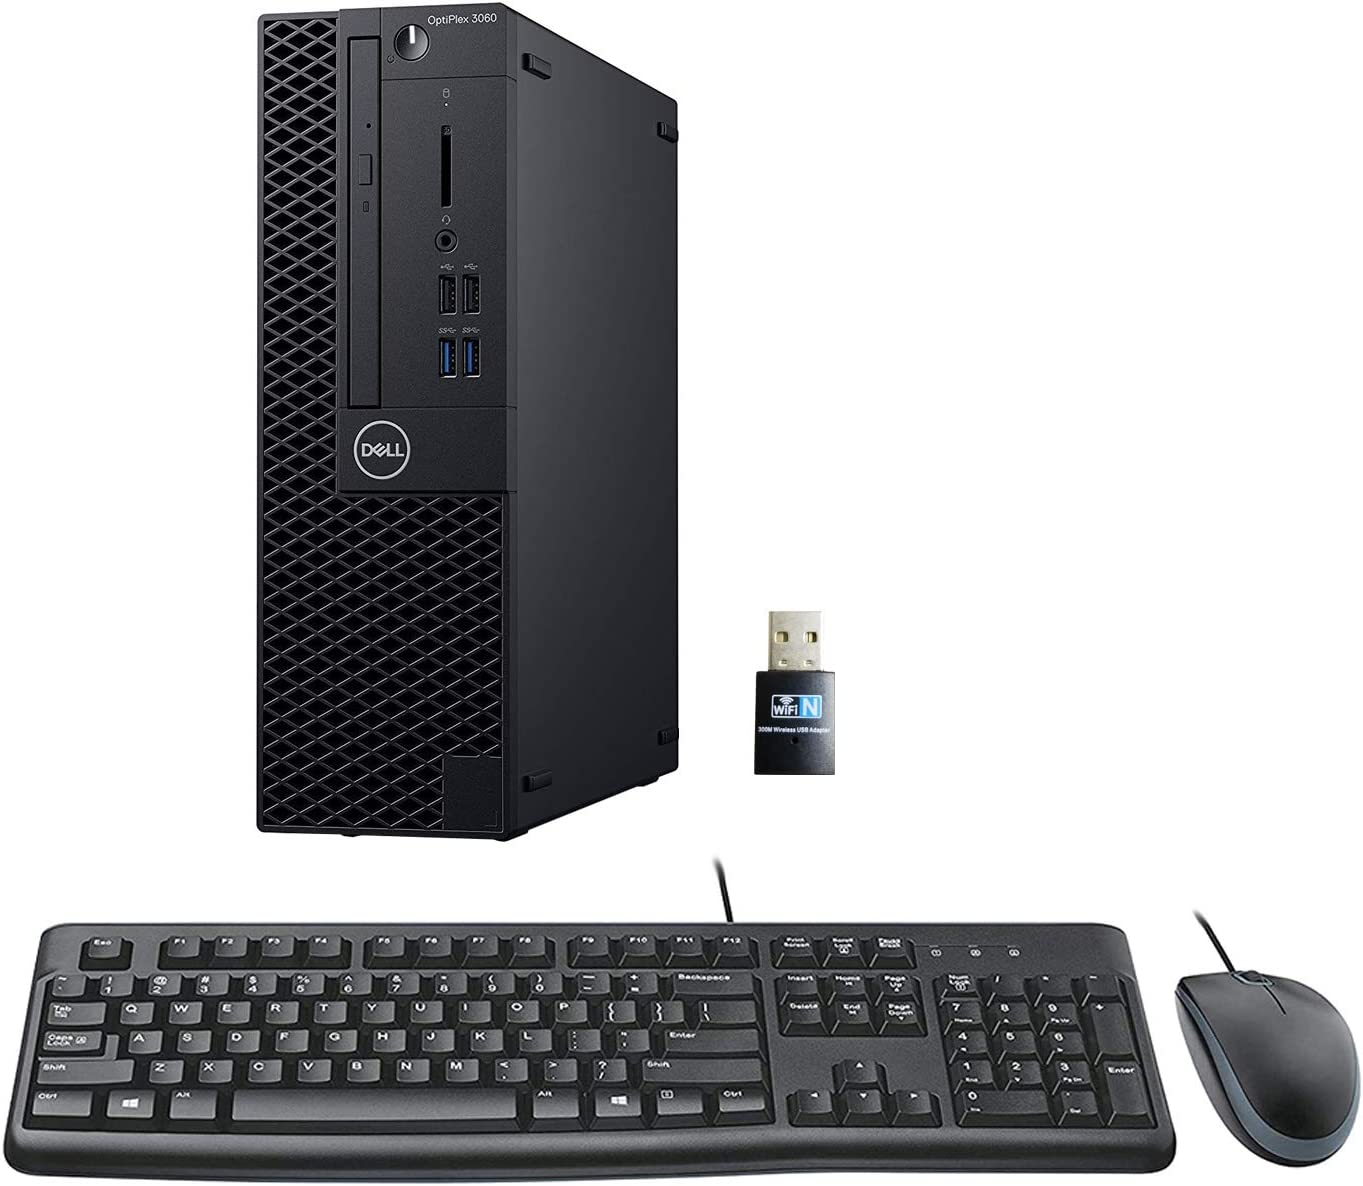 Dell Optiplex 3060 SFF Desktop PC Bundle with Keyboard, Mouse, Intel Core i5-8500 3.0GHz 6 Core (Hexa Core), 8GB DDR4 RAM, 1TB HDD, WiFi, Windows 10 Pro